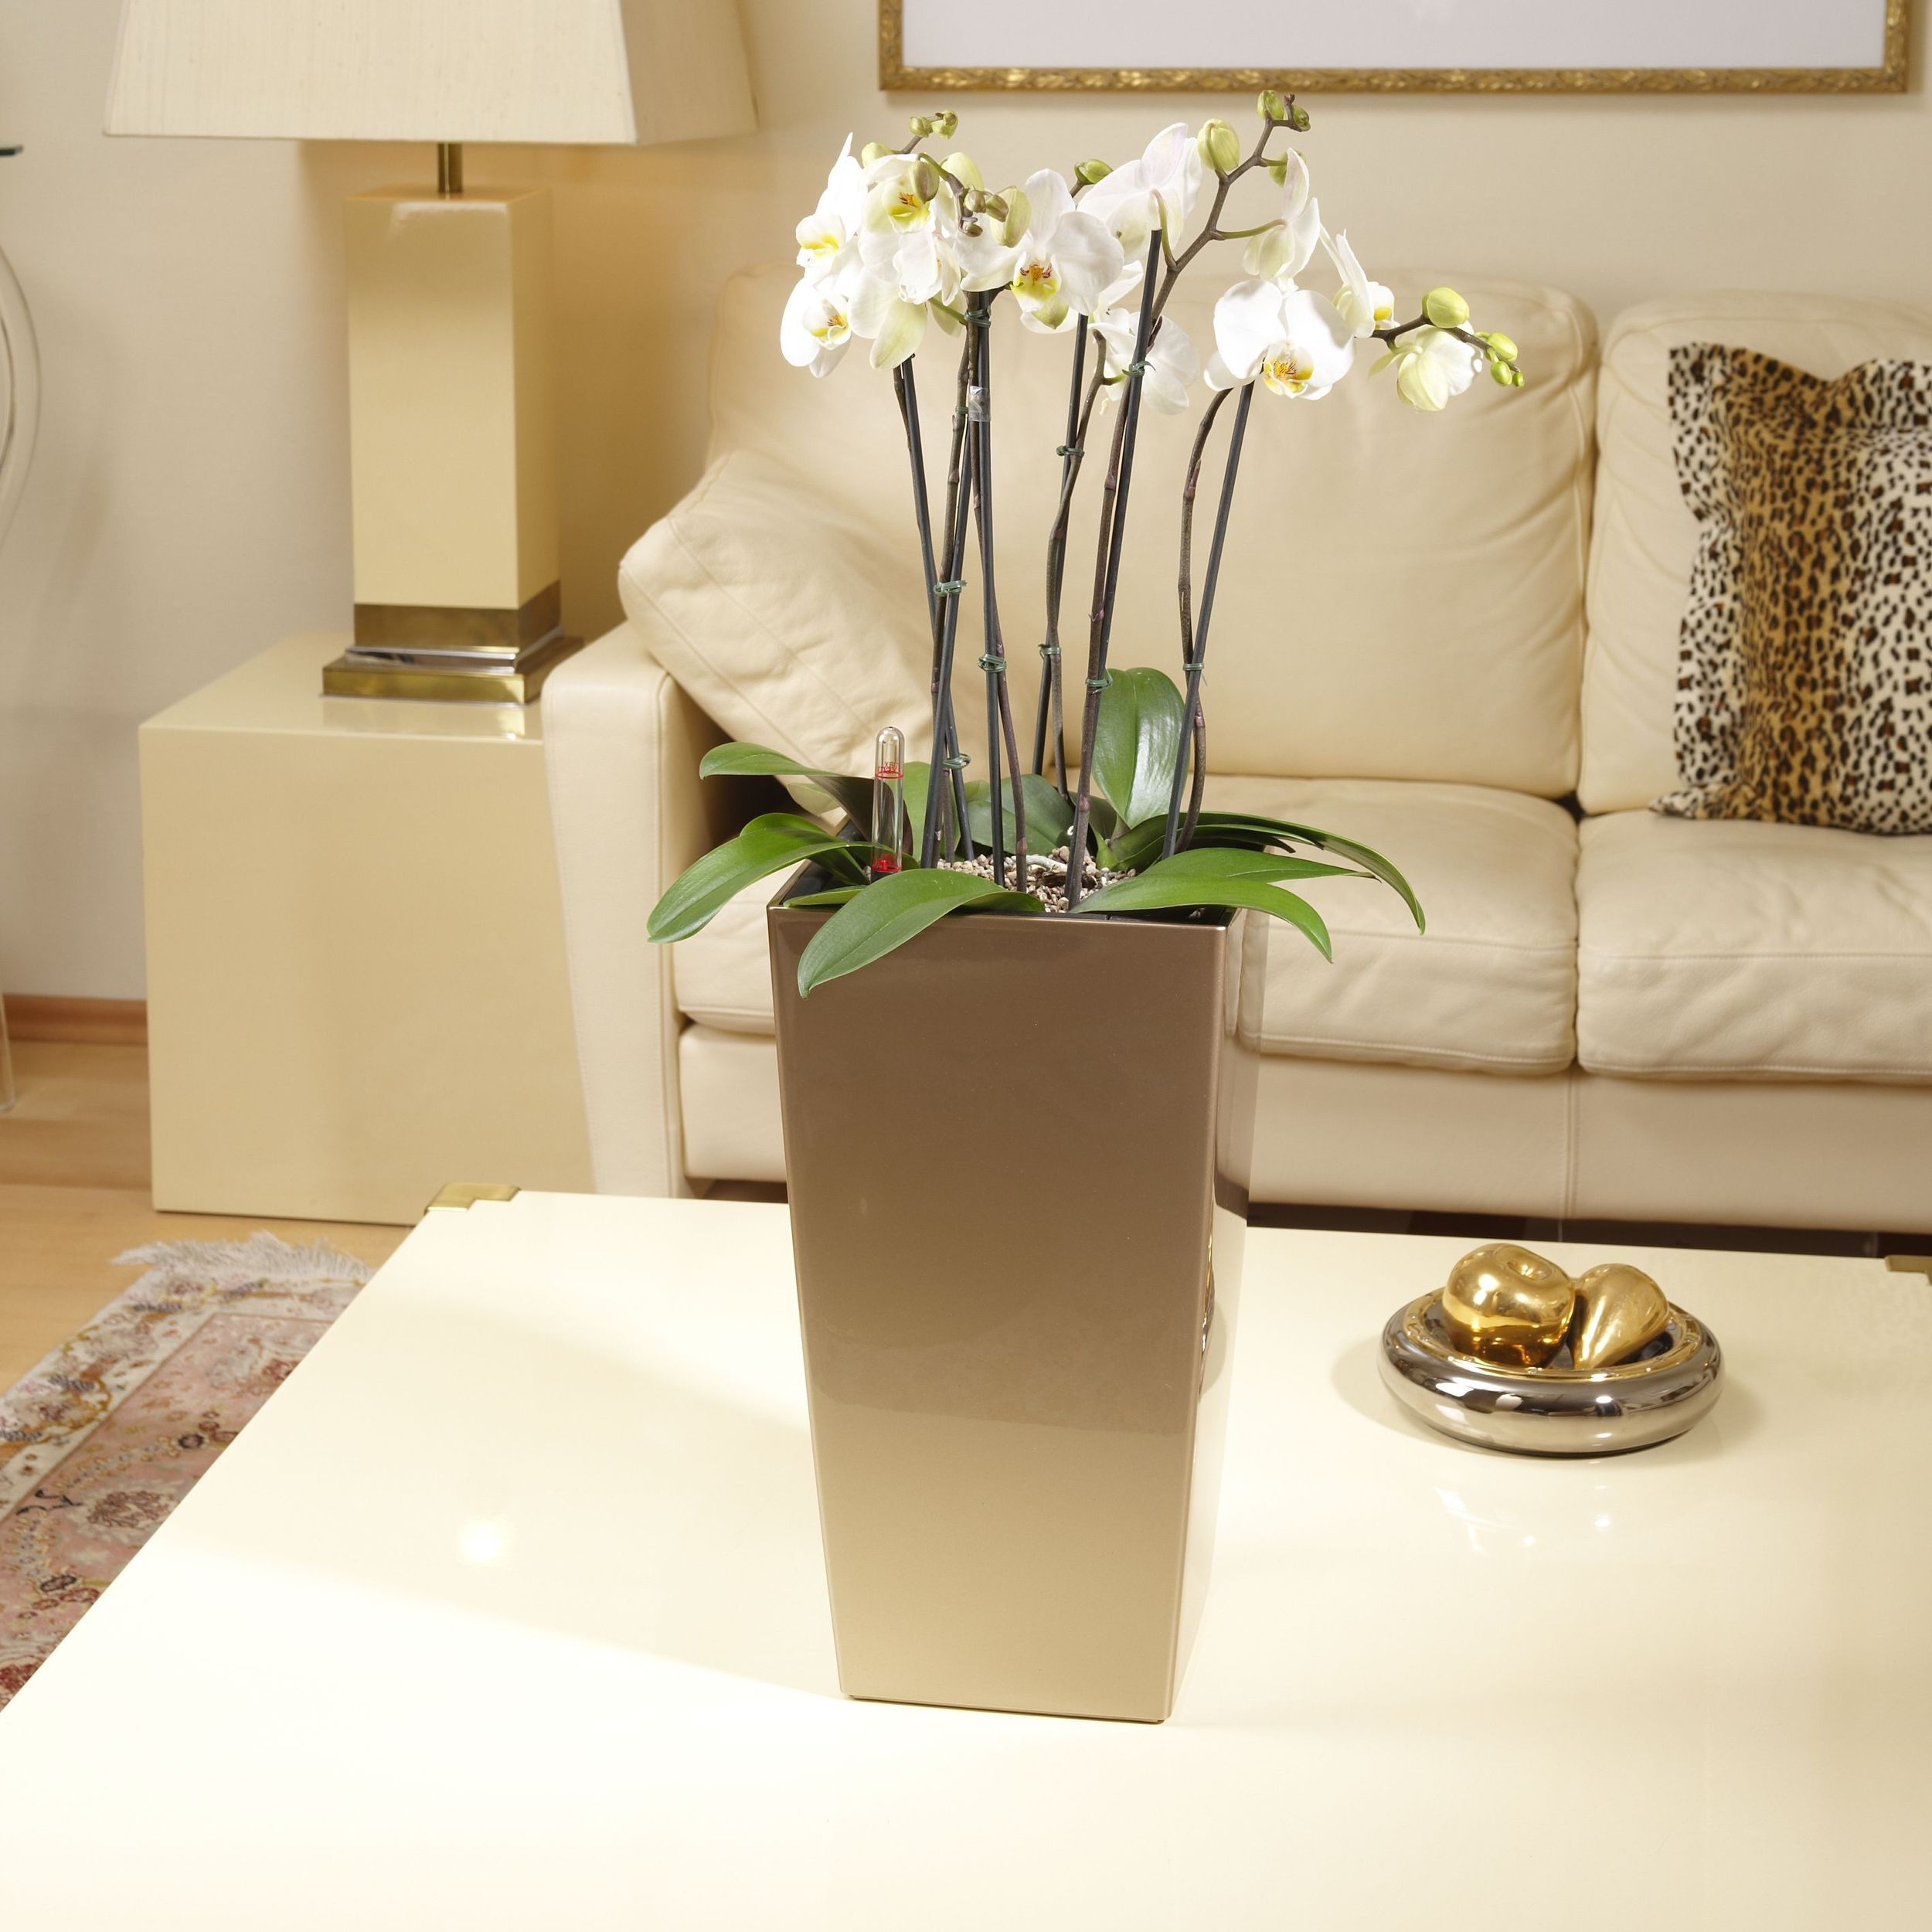 Cubico 22 Pearl Beige with orchids in living room.jpg